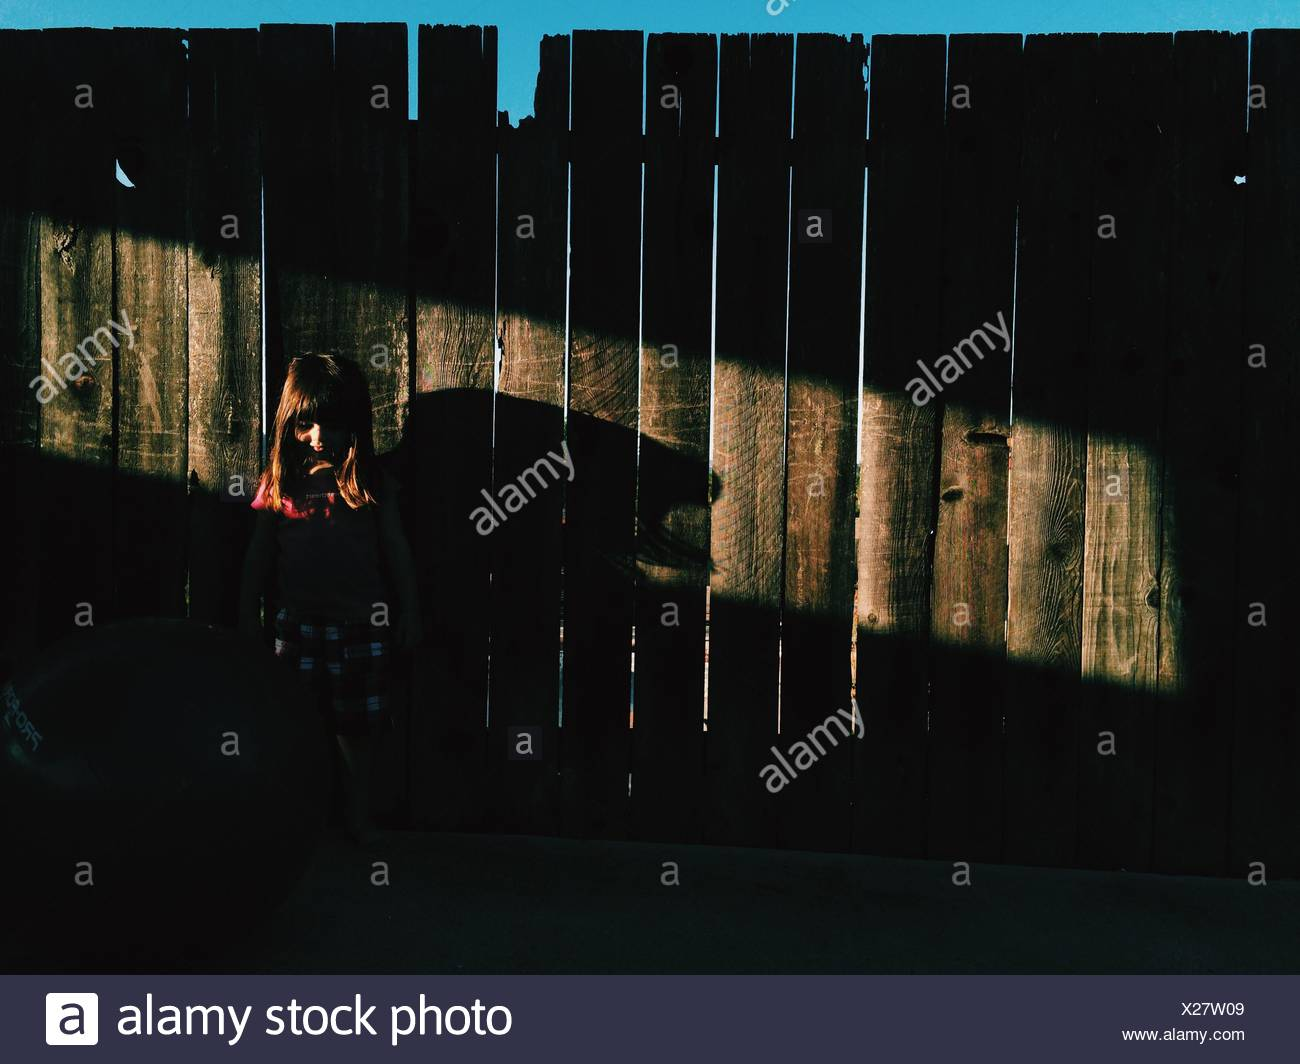 Girl Standing Against Fence - Stock Image